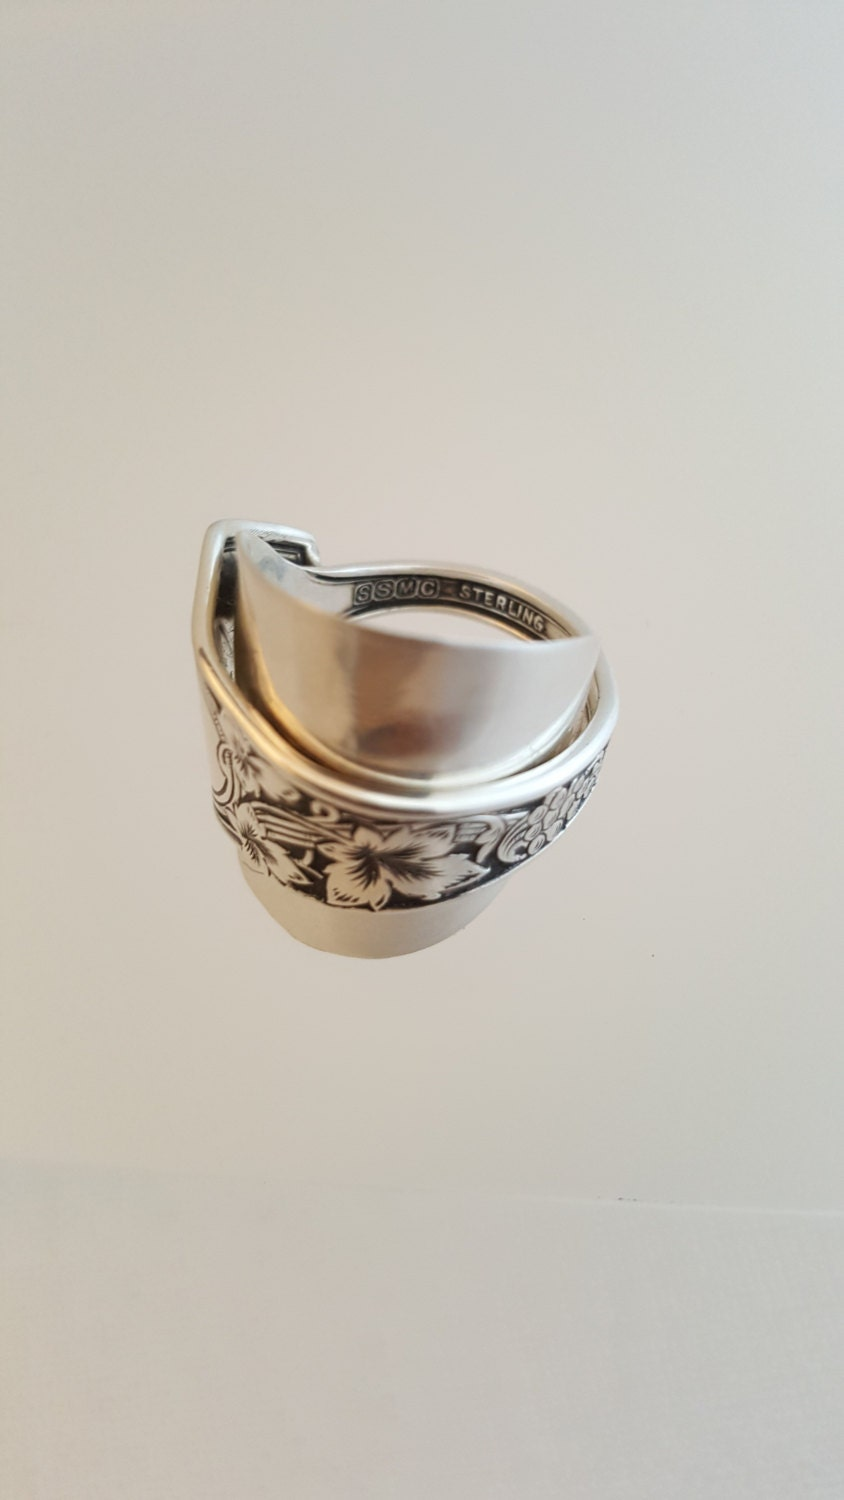 spoon ring grapes sterling silver spoon ring vintage spoon